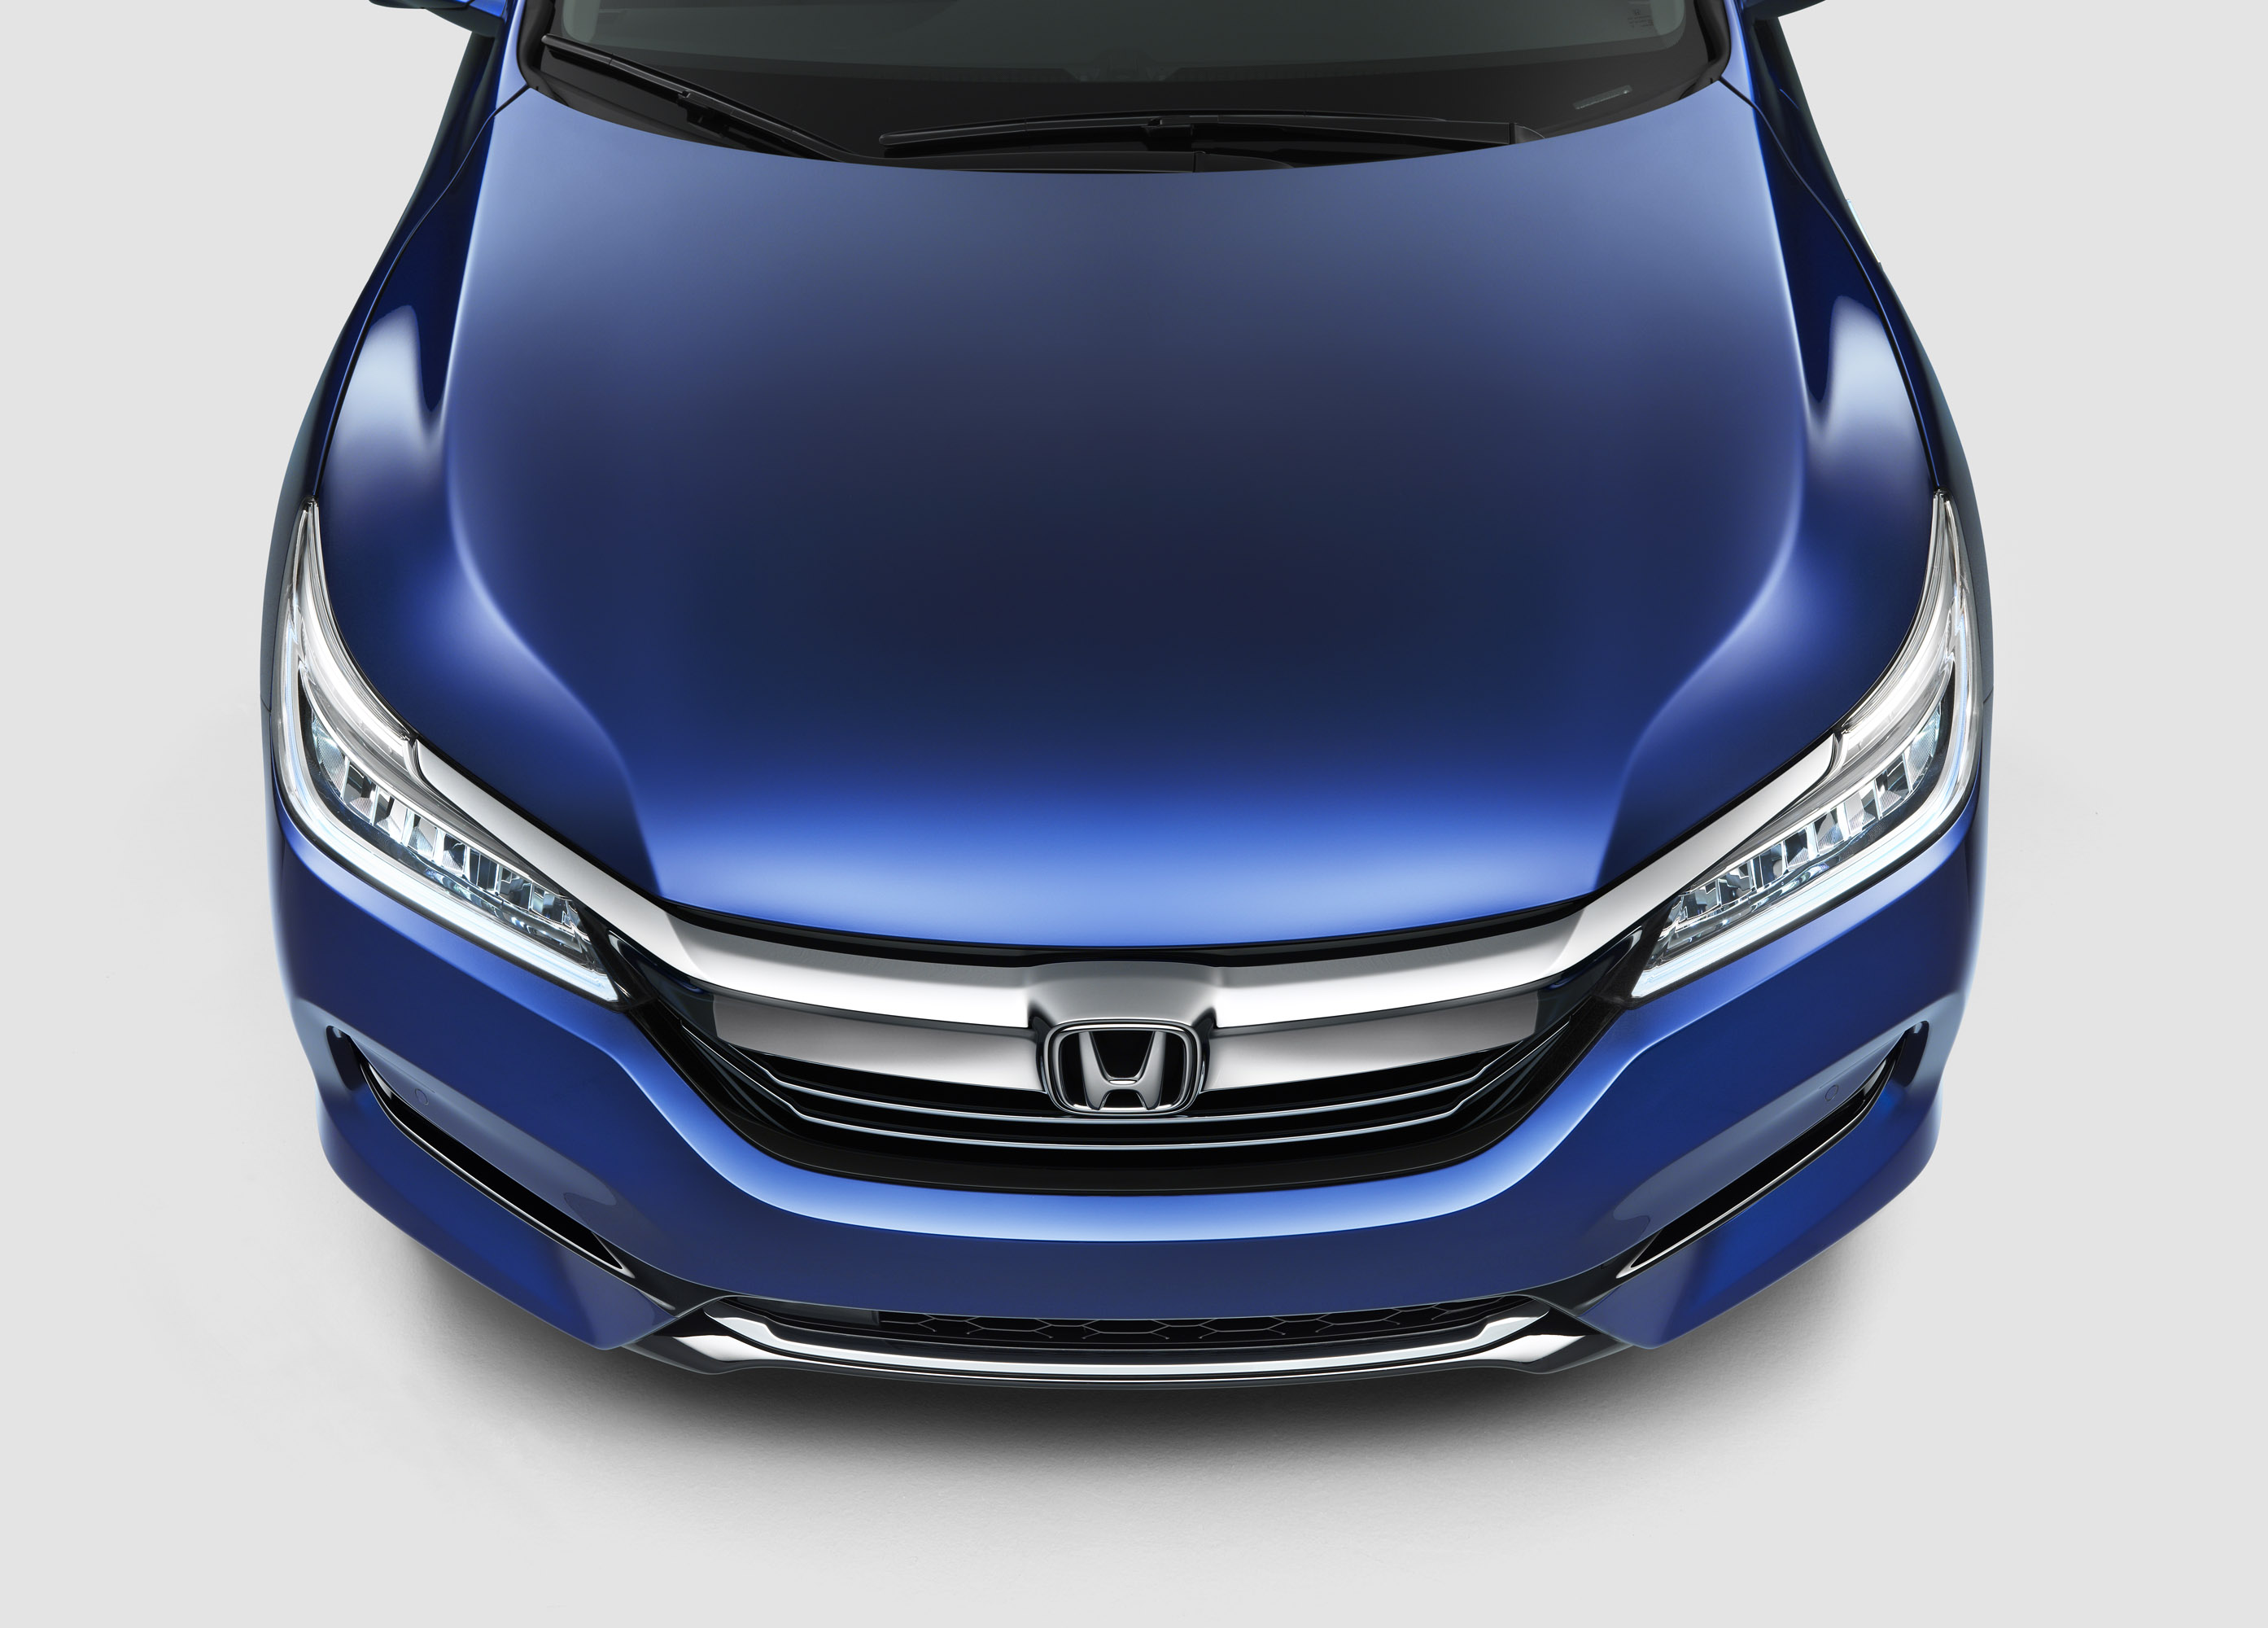 Honda Clarity Plug-In Hybrid exterior specifications